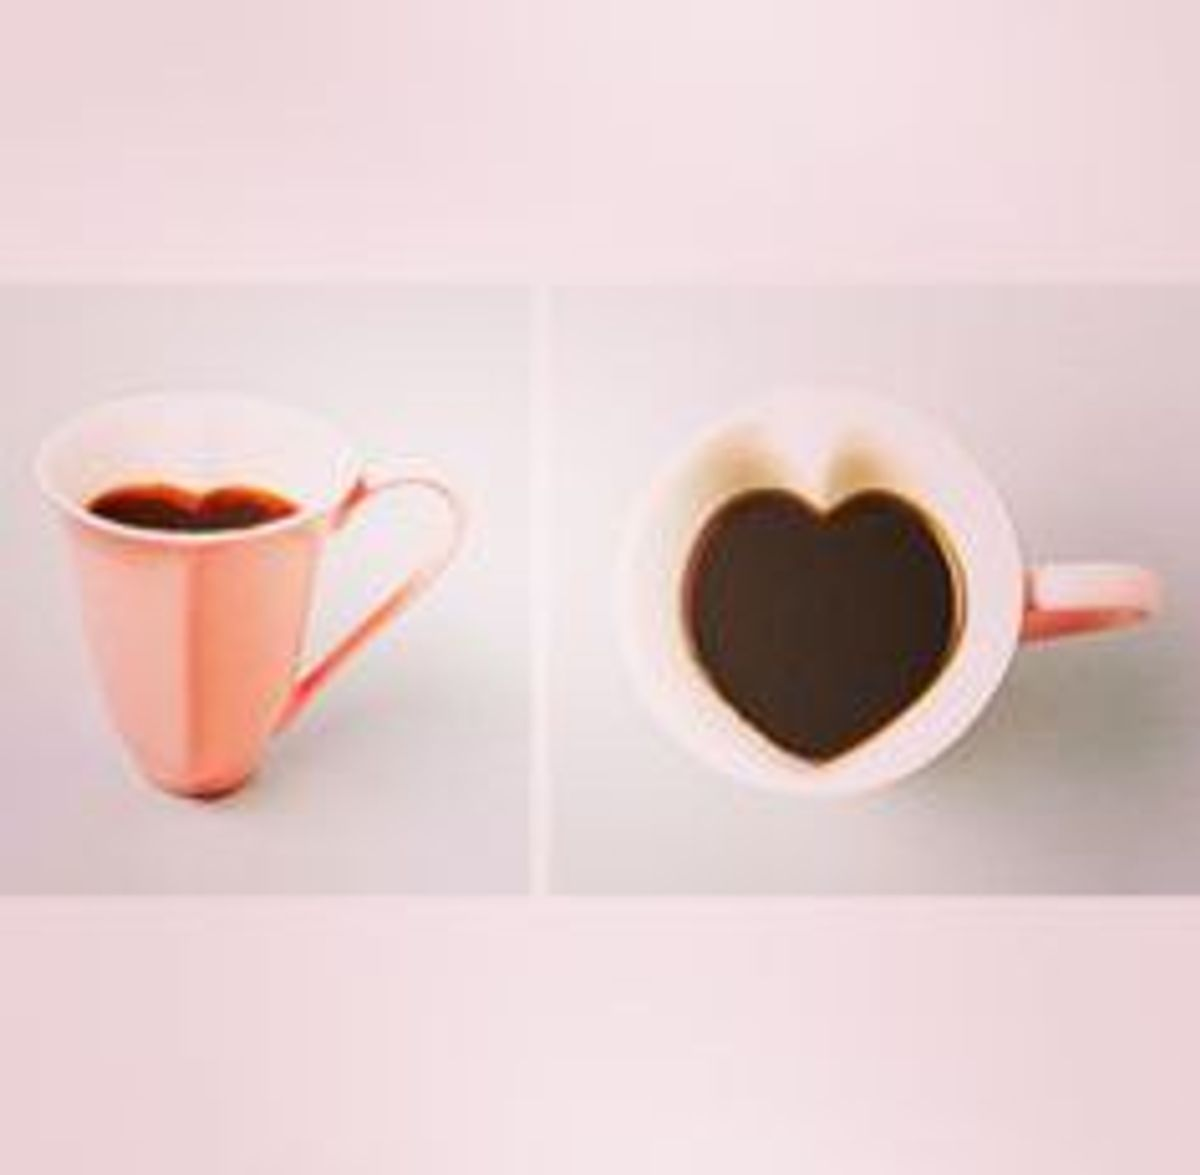 12 Signs You Love Coffee Too Much